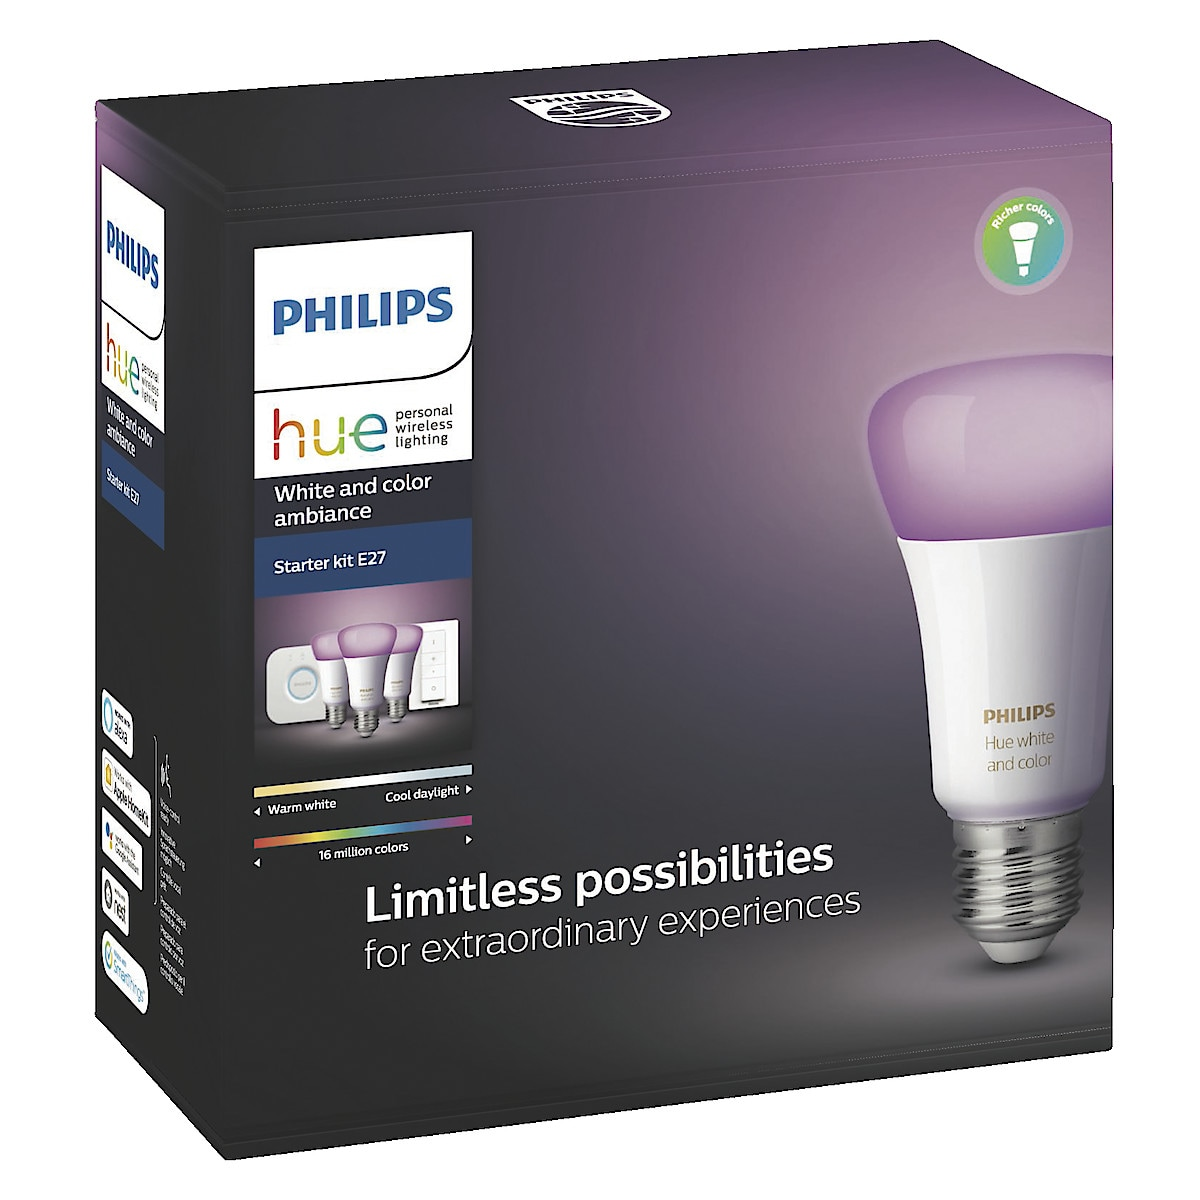 Philips Hue White and Color Ambiance Startpaket E27, Bluetooth